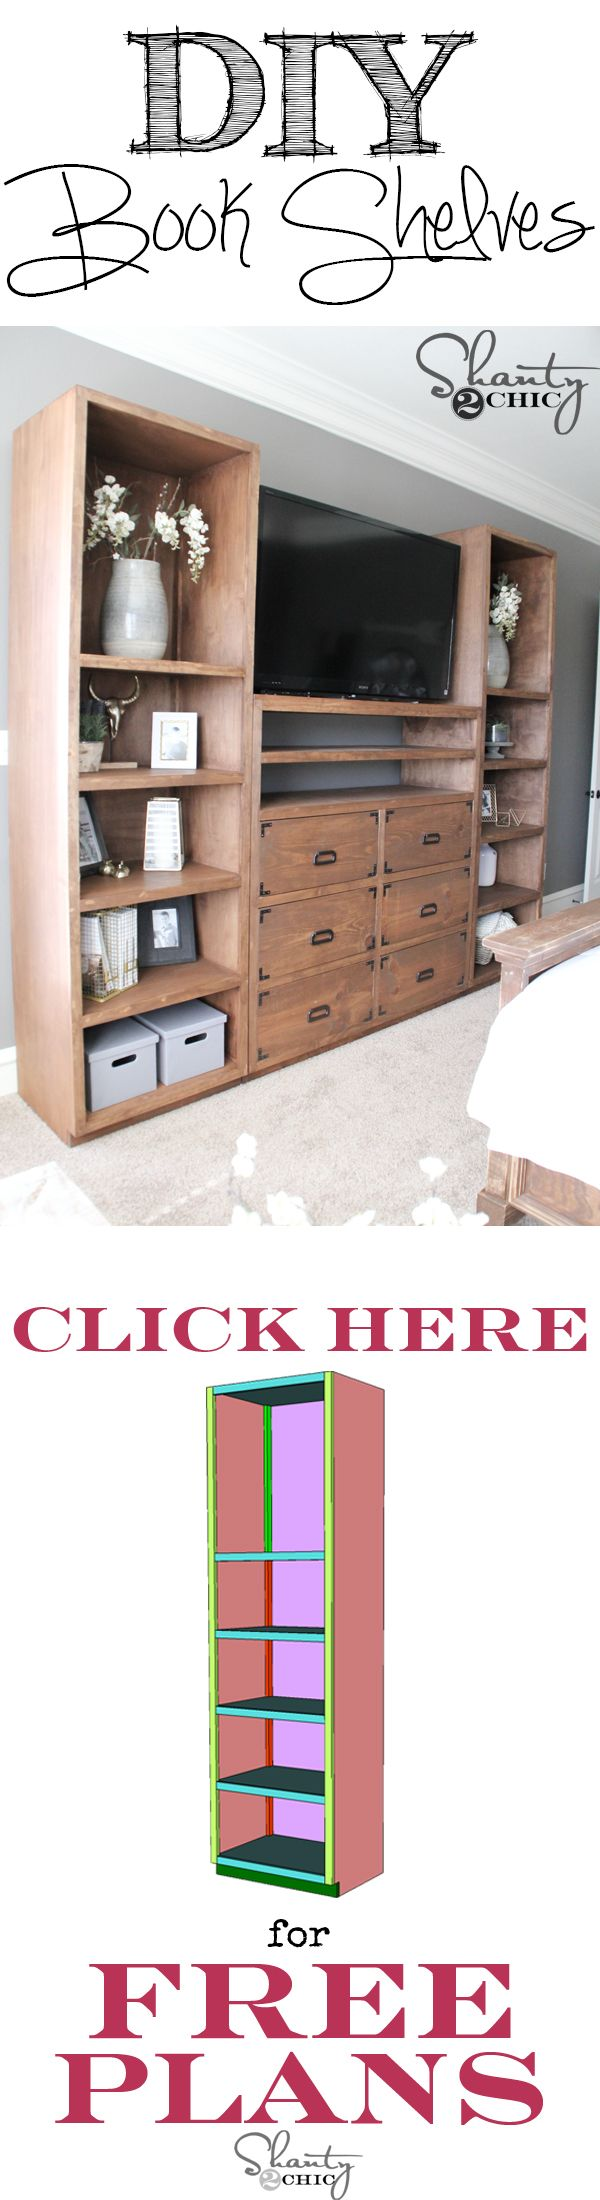 Free Diy Projects 9797 Best Shantys Tutorials Images On Pinterest Home Diy And